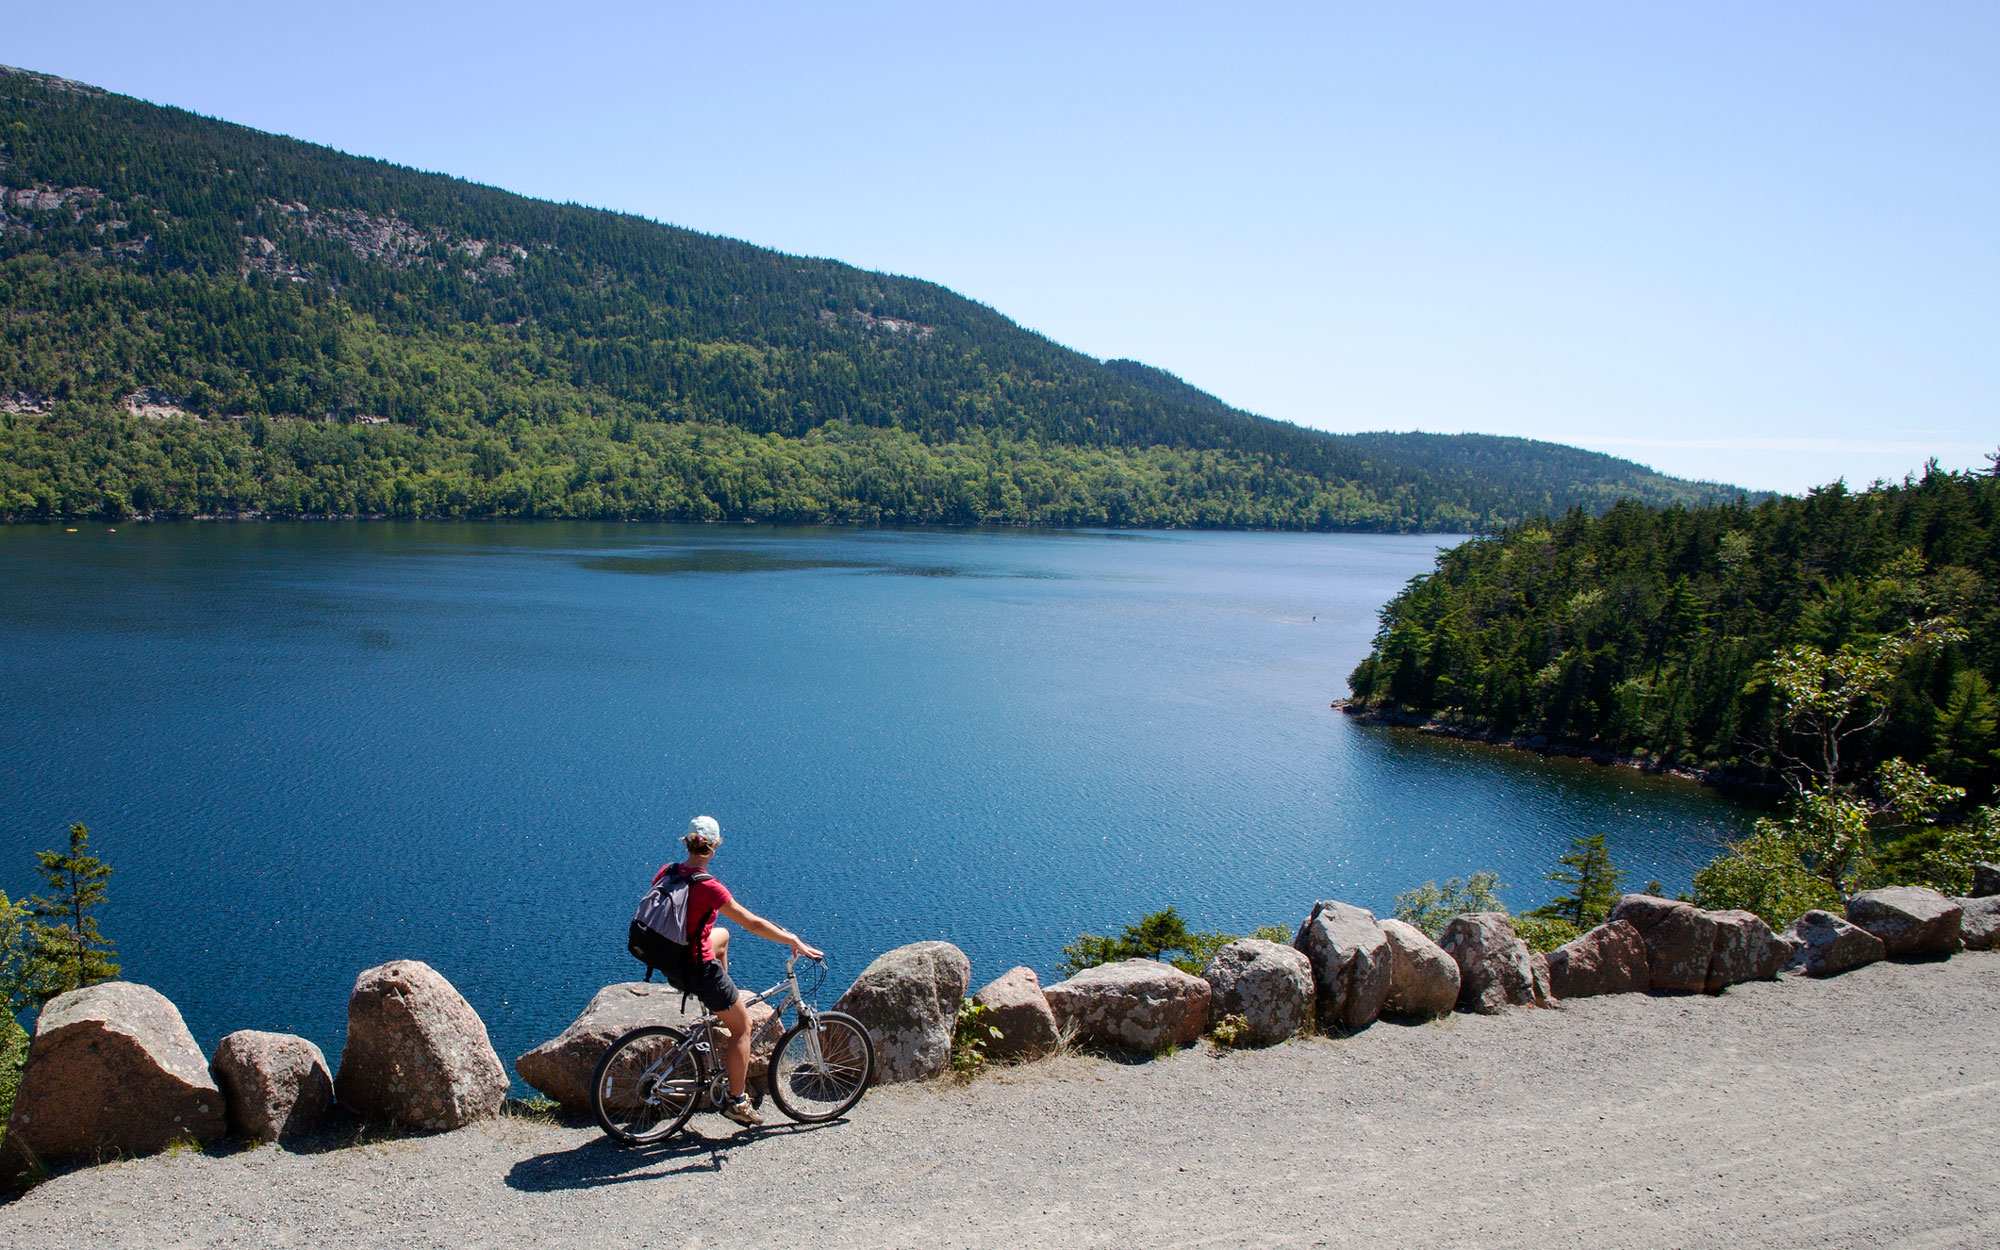 East Coast bike path to cover 3,000 miles from Florida to Maine